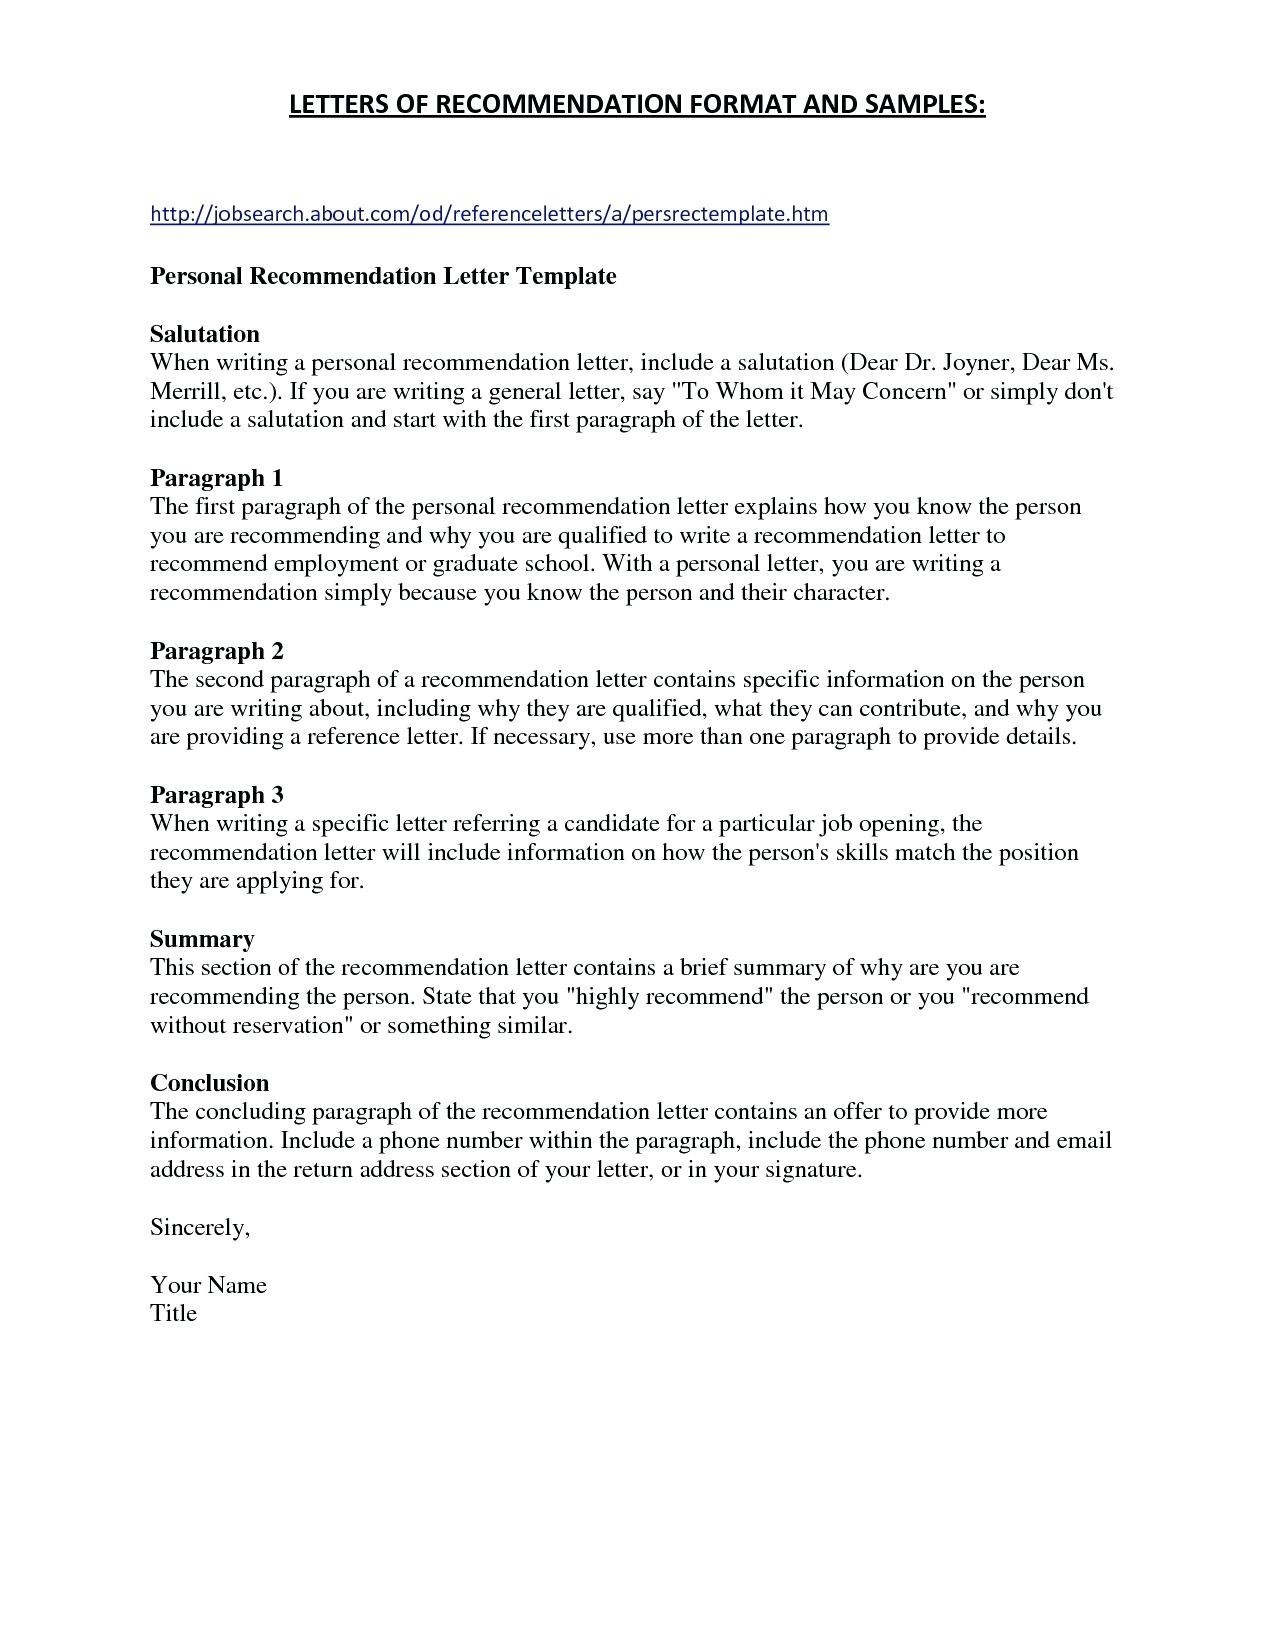 Contract Amendment Letter Template - Sample Cancellation Services Letter Temp Stunning Sample